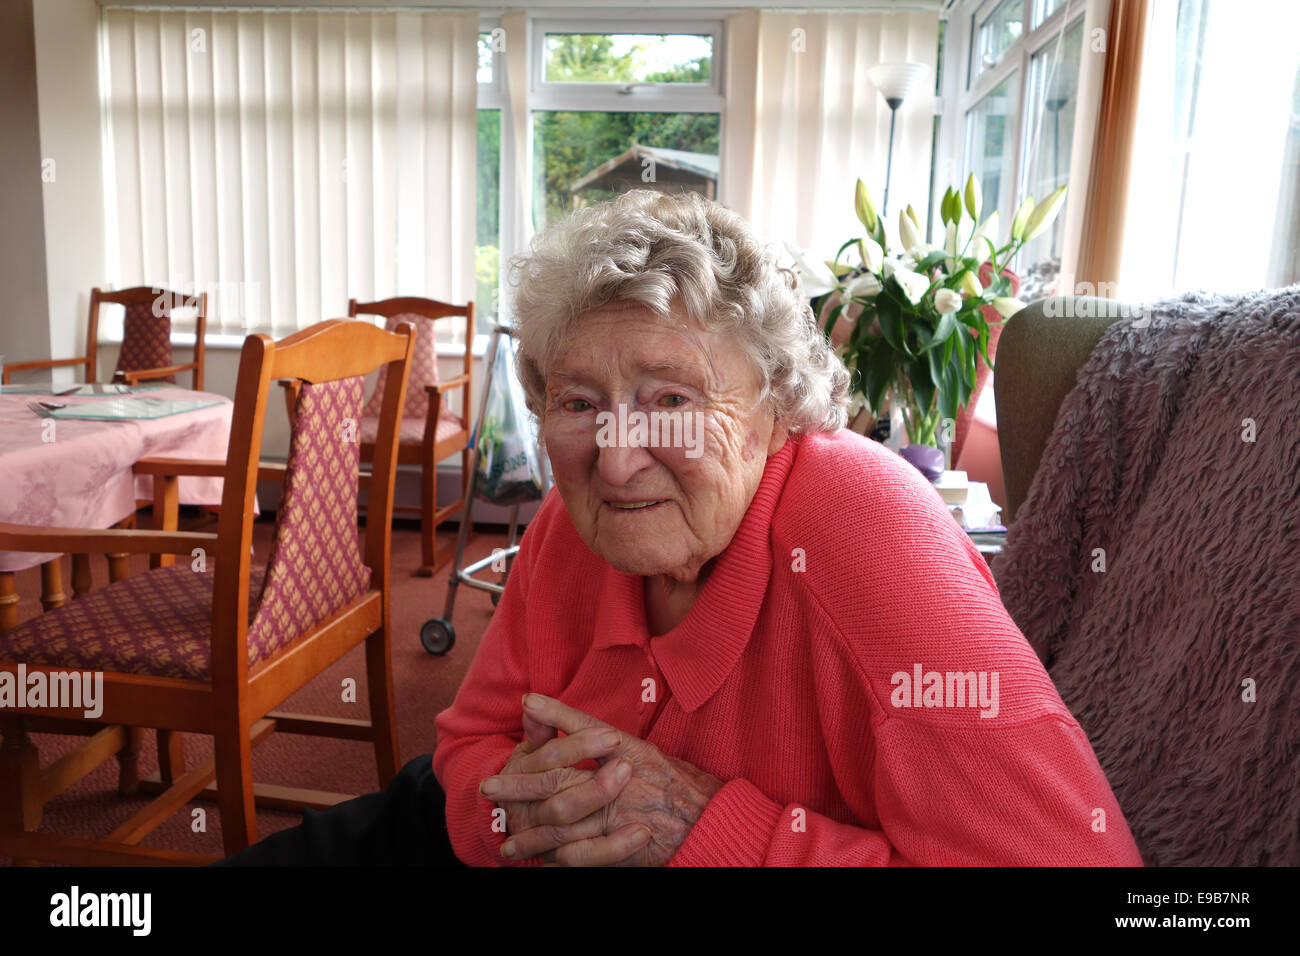 Elderly woman 99 years old in care home Uk - Stock Image